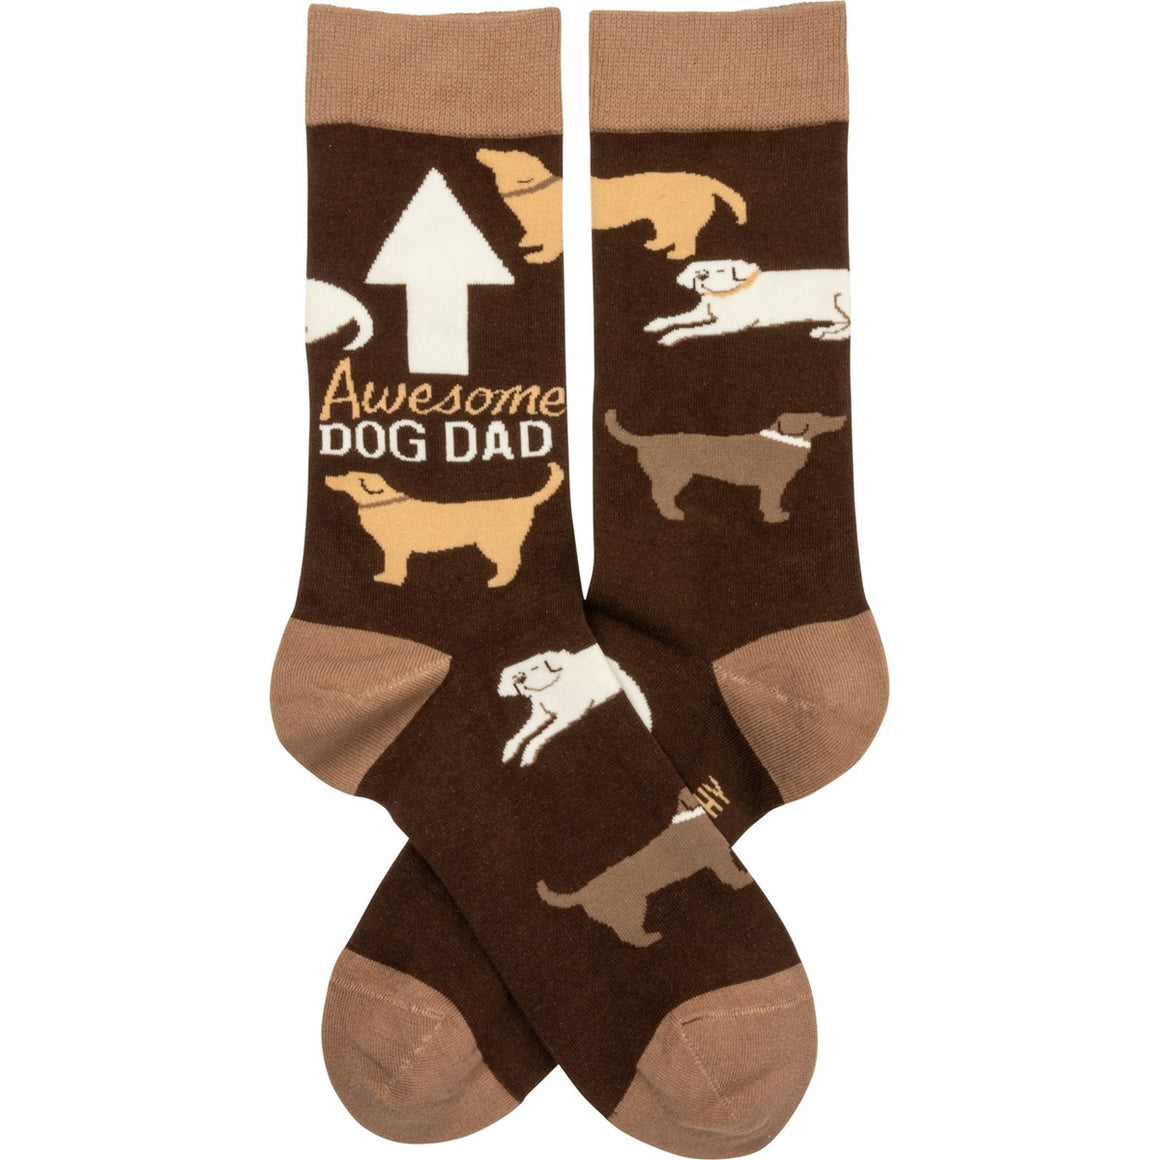 Awesome Dog Dad Socks